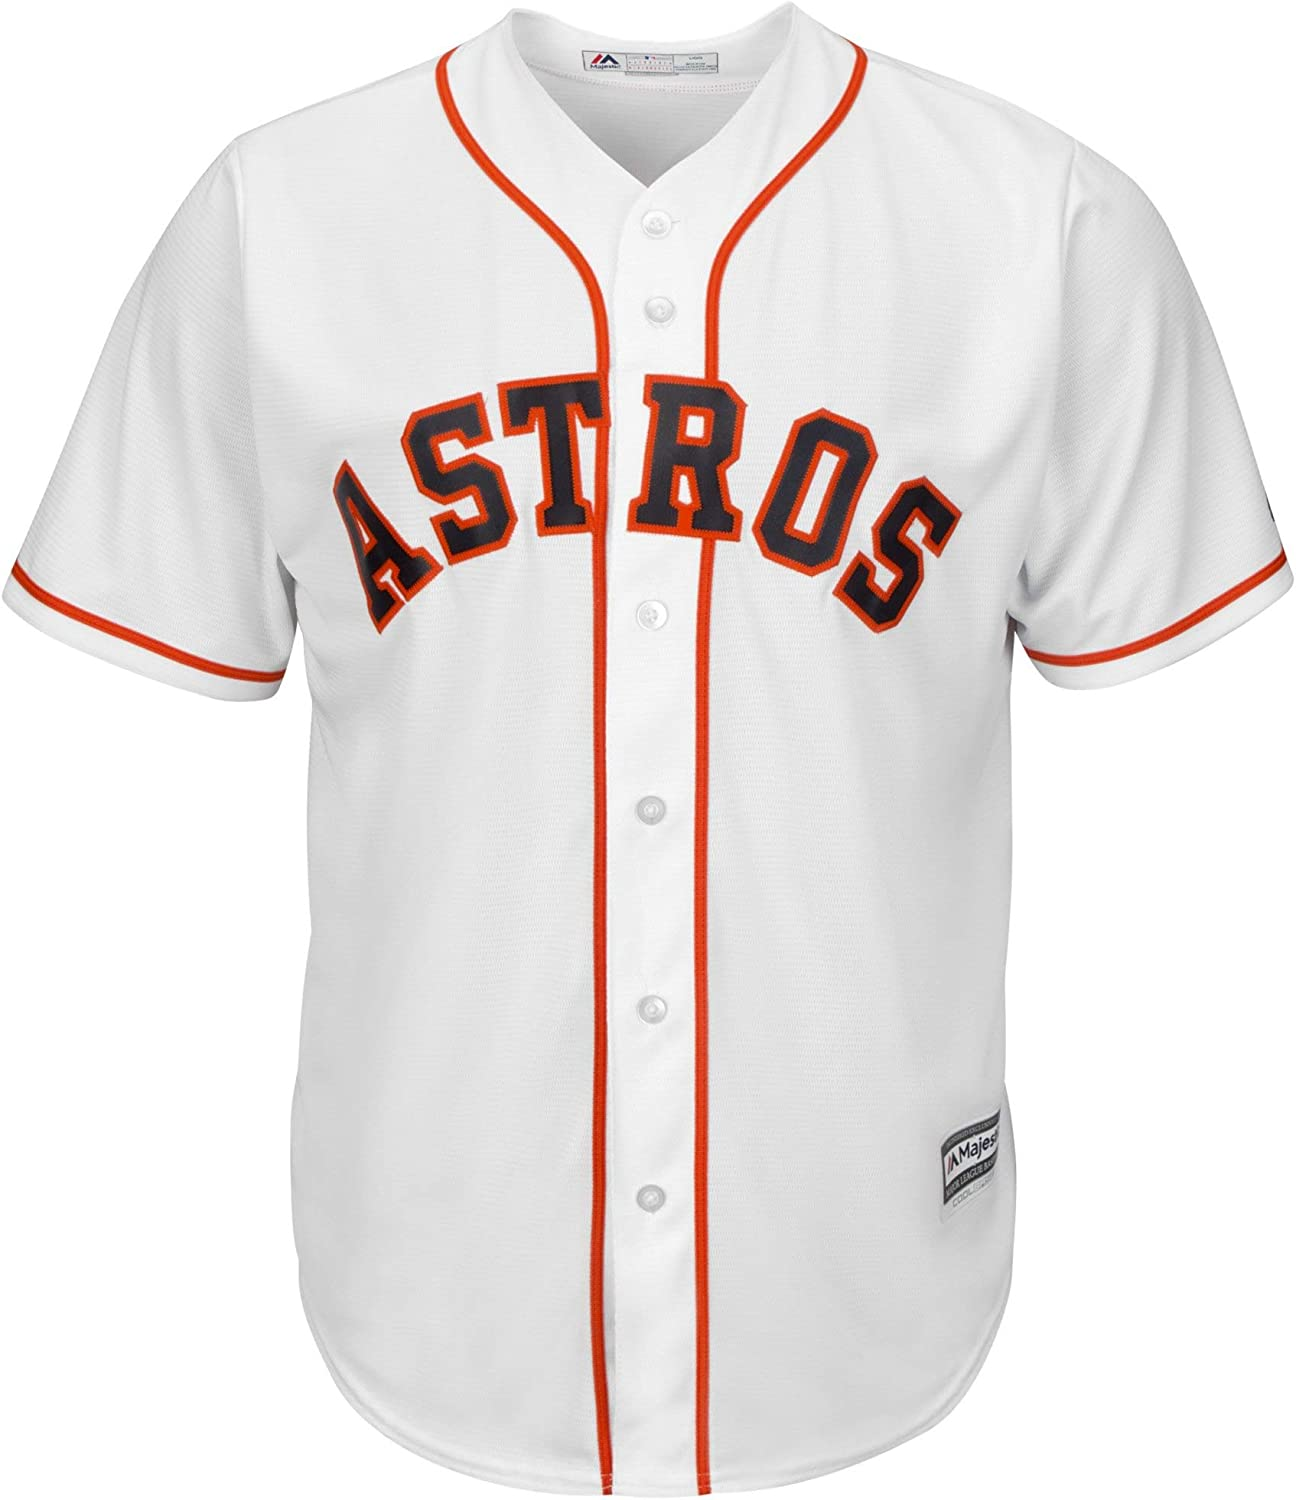 Outerstuff Jose Altuve Houston Astros MLB Majestic Toddler White Home Cool Base Player Jersey